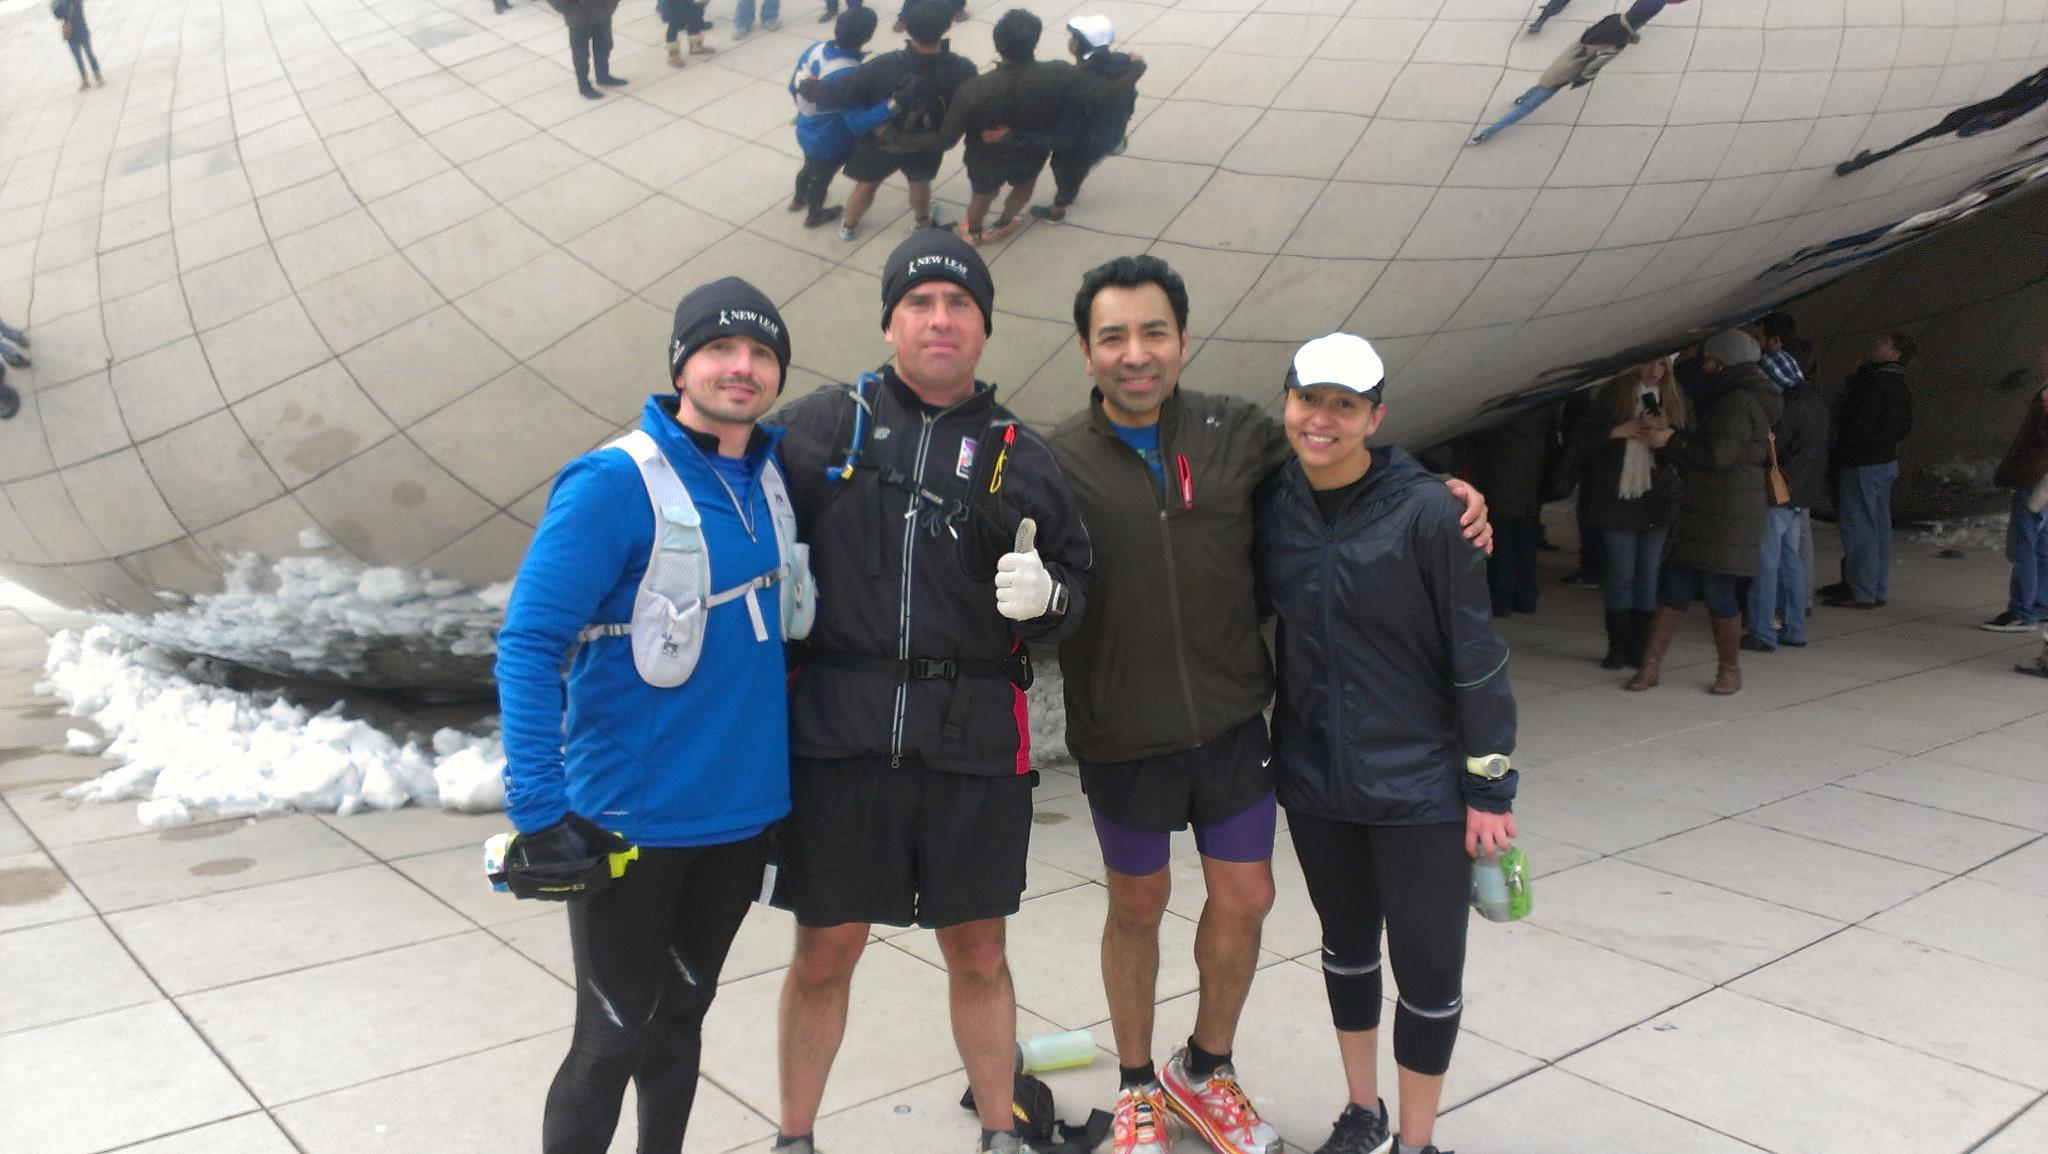 fun-run-from-naperville-to-chicago-about-30miles-ran-with-scott-and-alfredo-and-running-group-march-2013